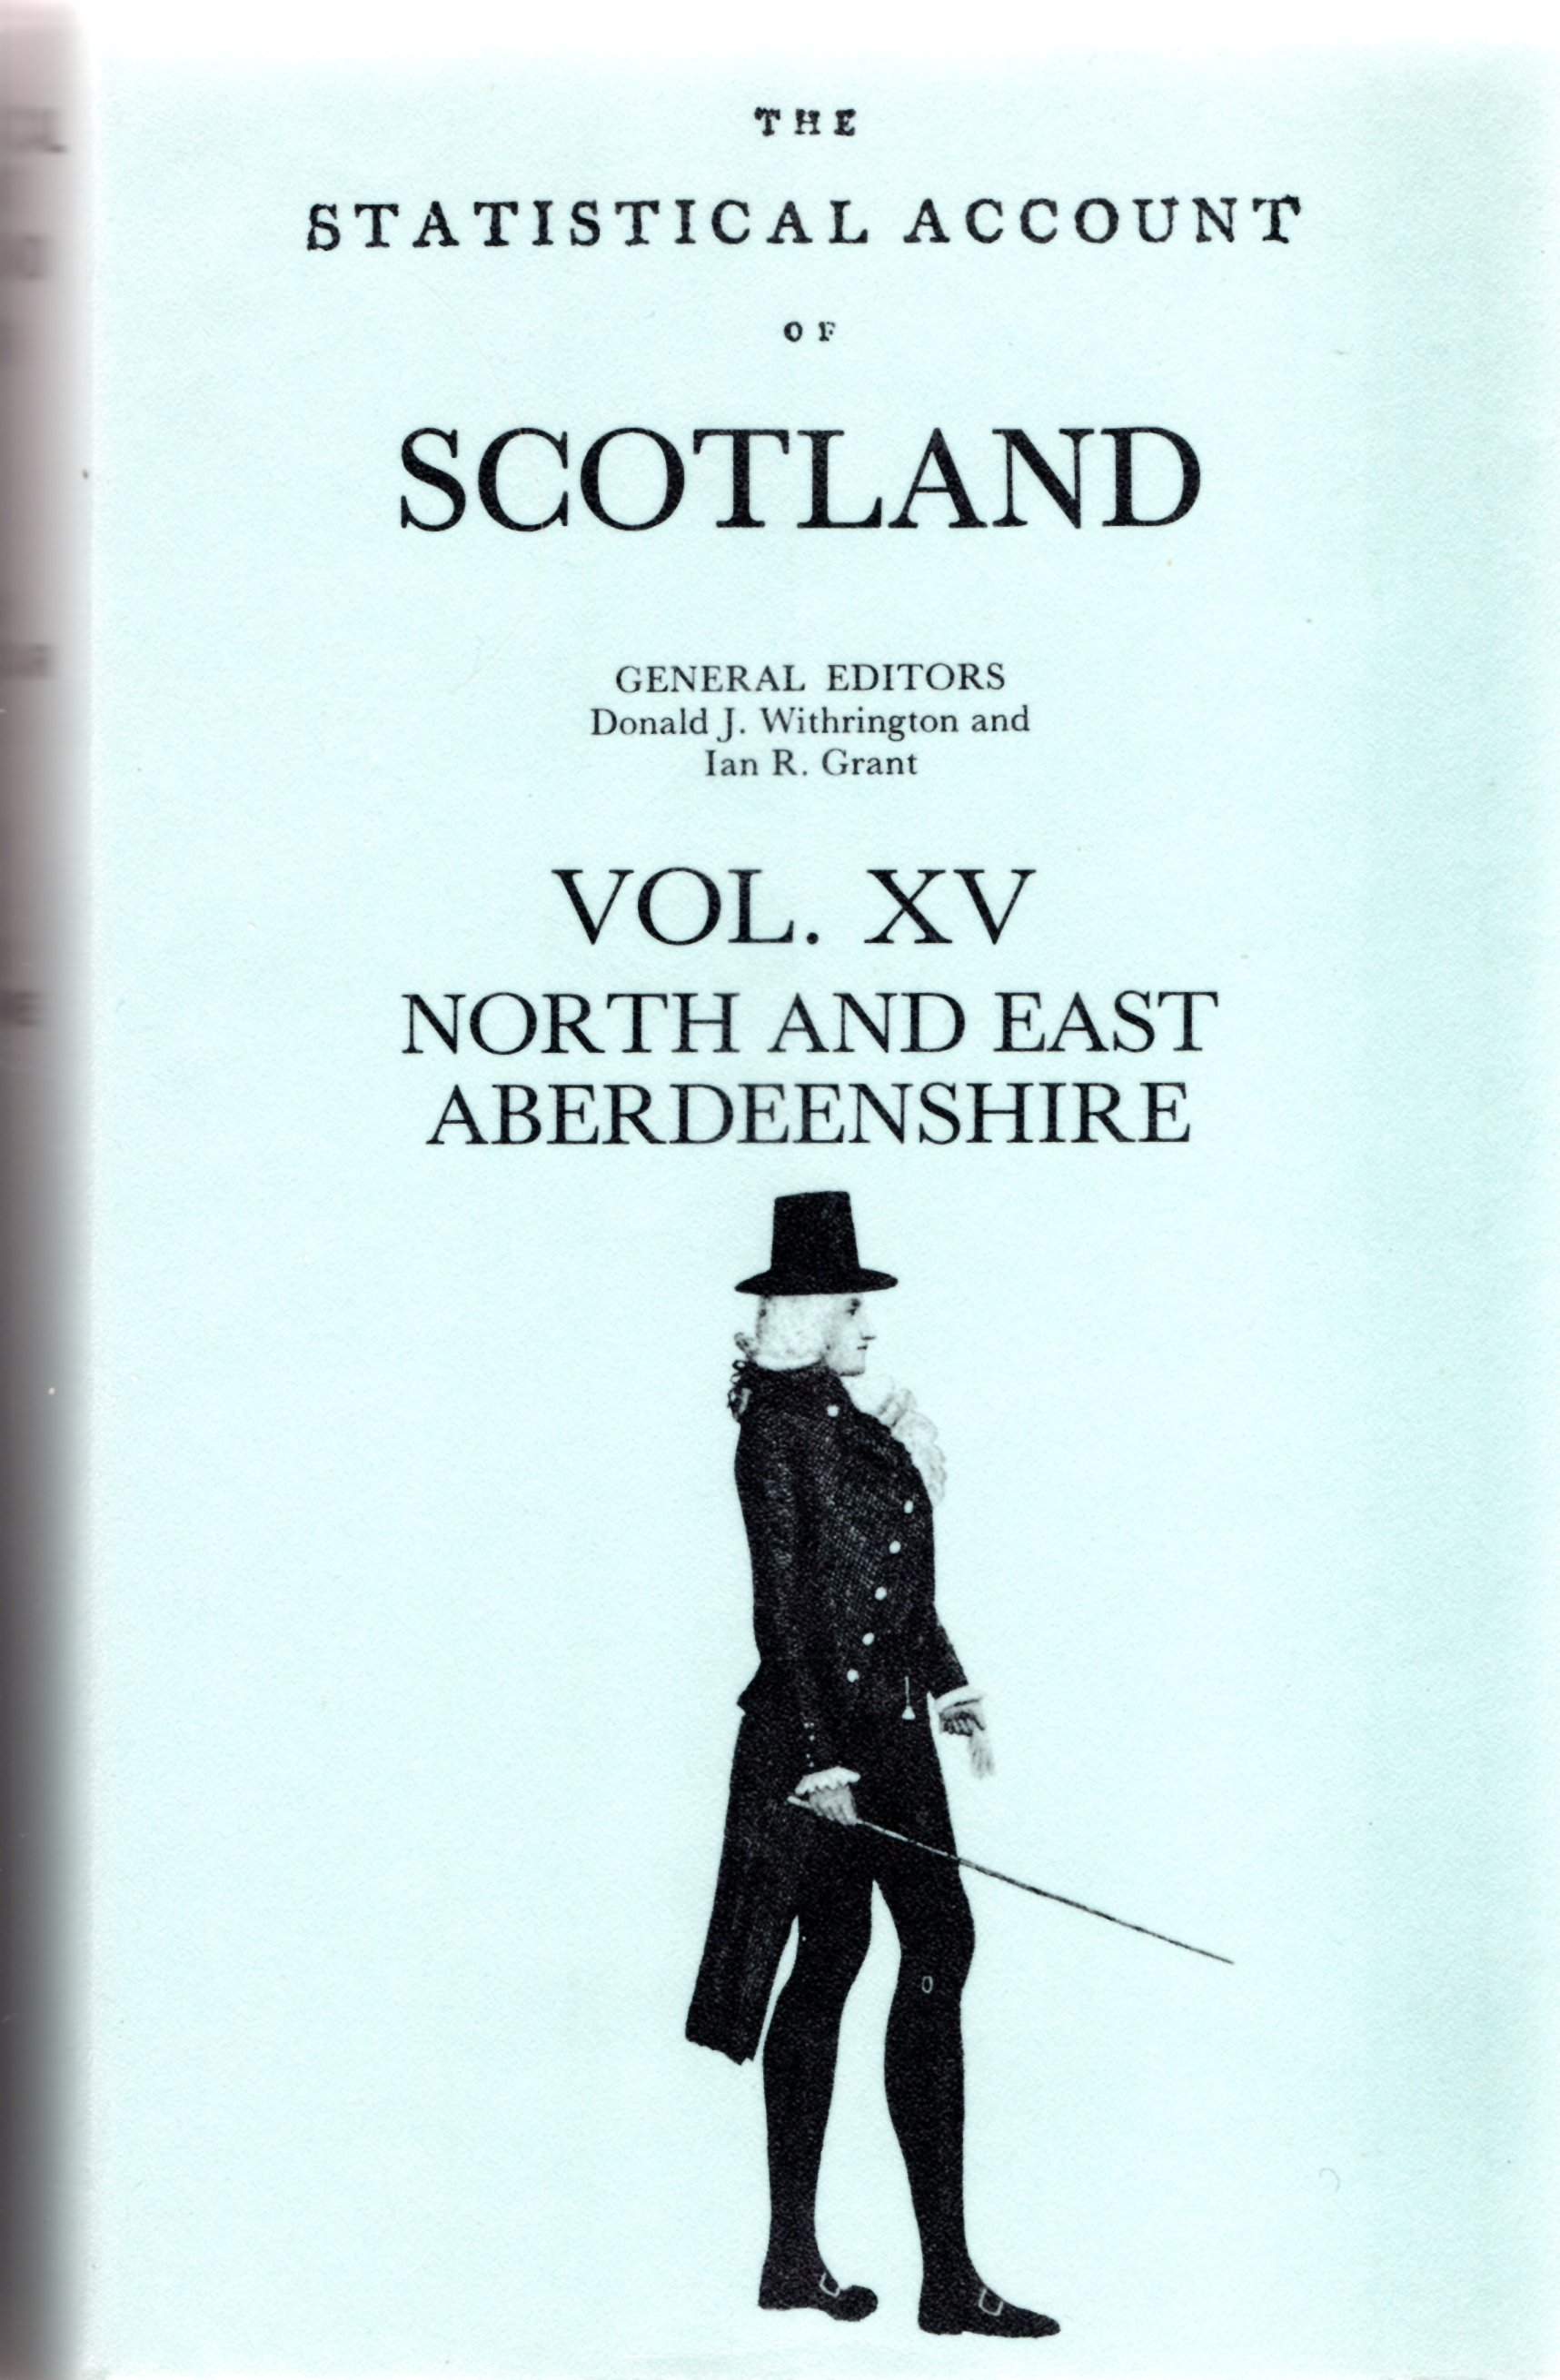 Image for Statistical Account of Scotland: North and East Aberdeenshire v. XV (15)